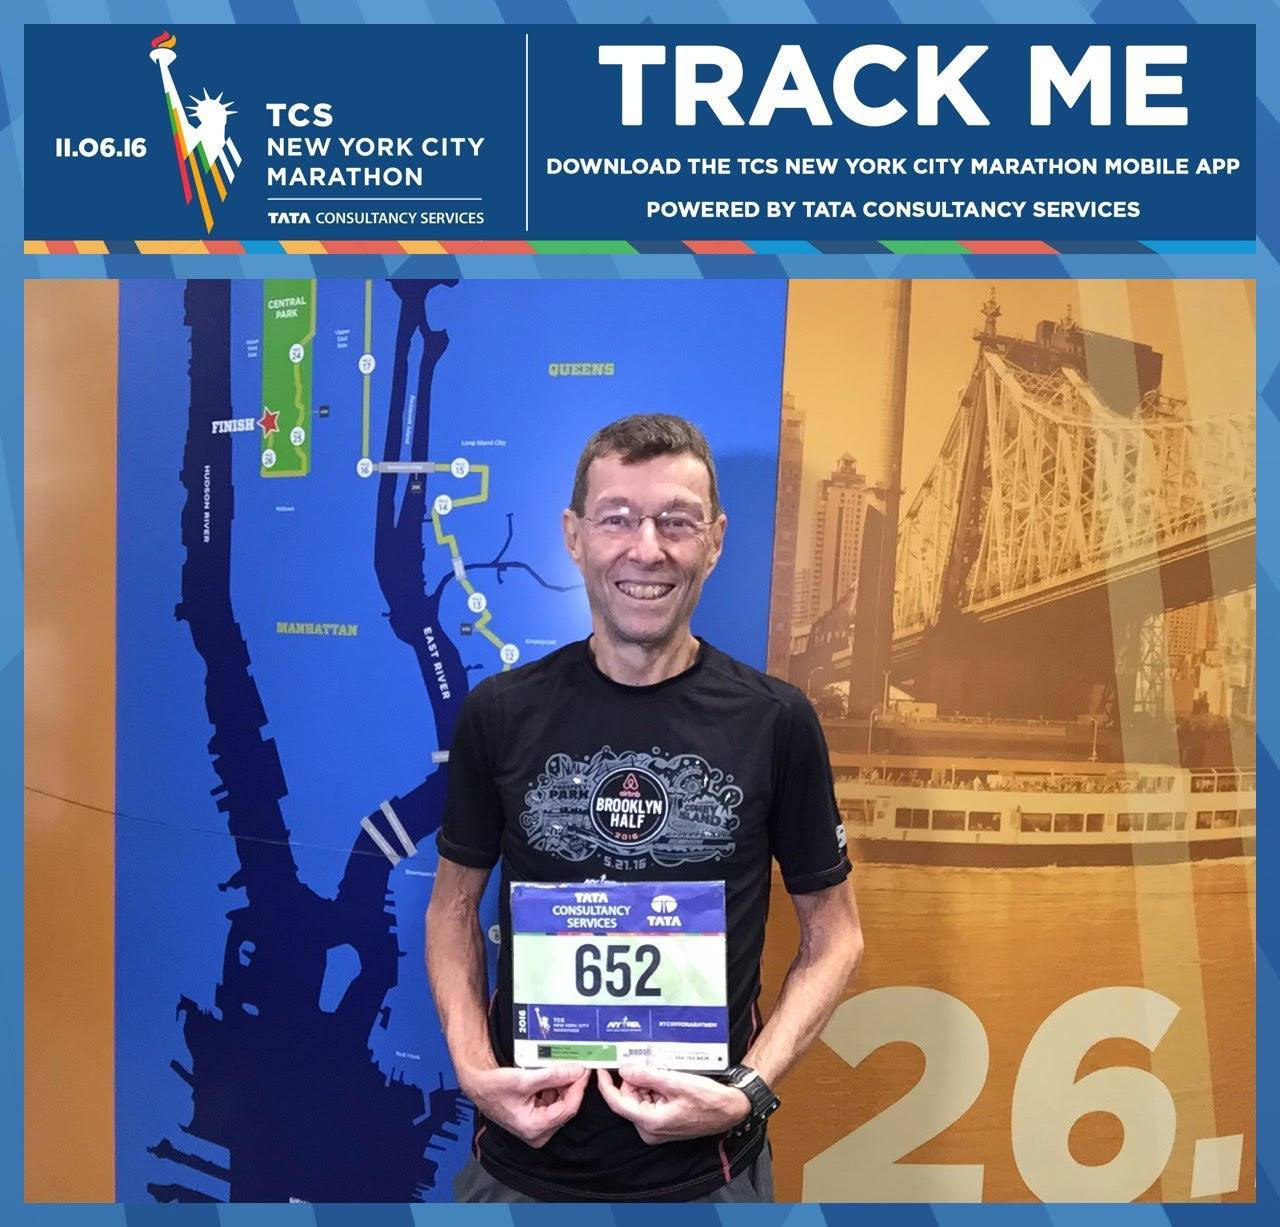 Paul Racine Nyc Marathon 2016